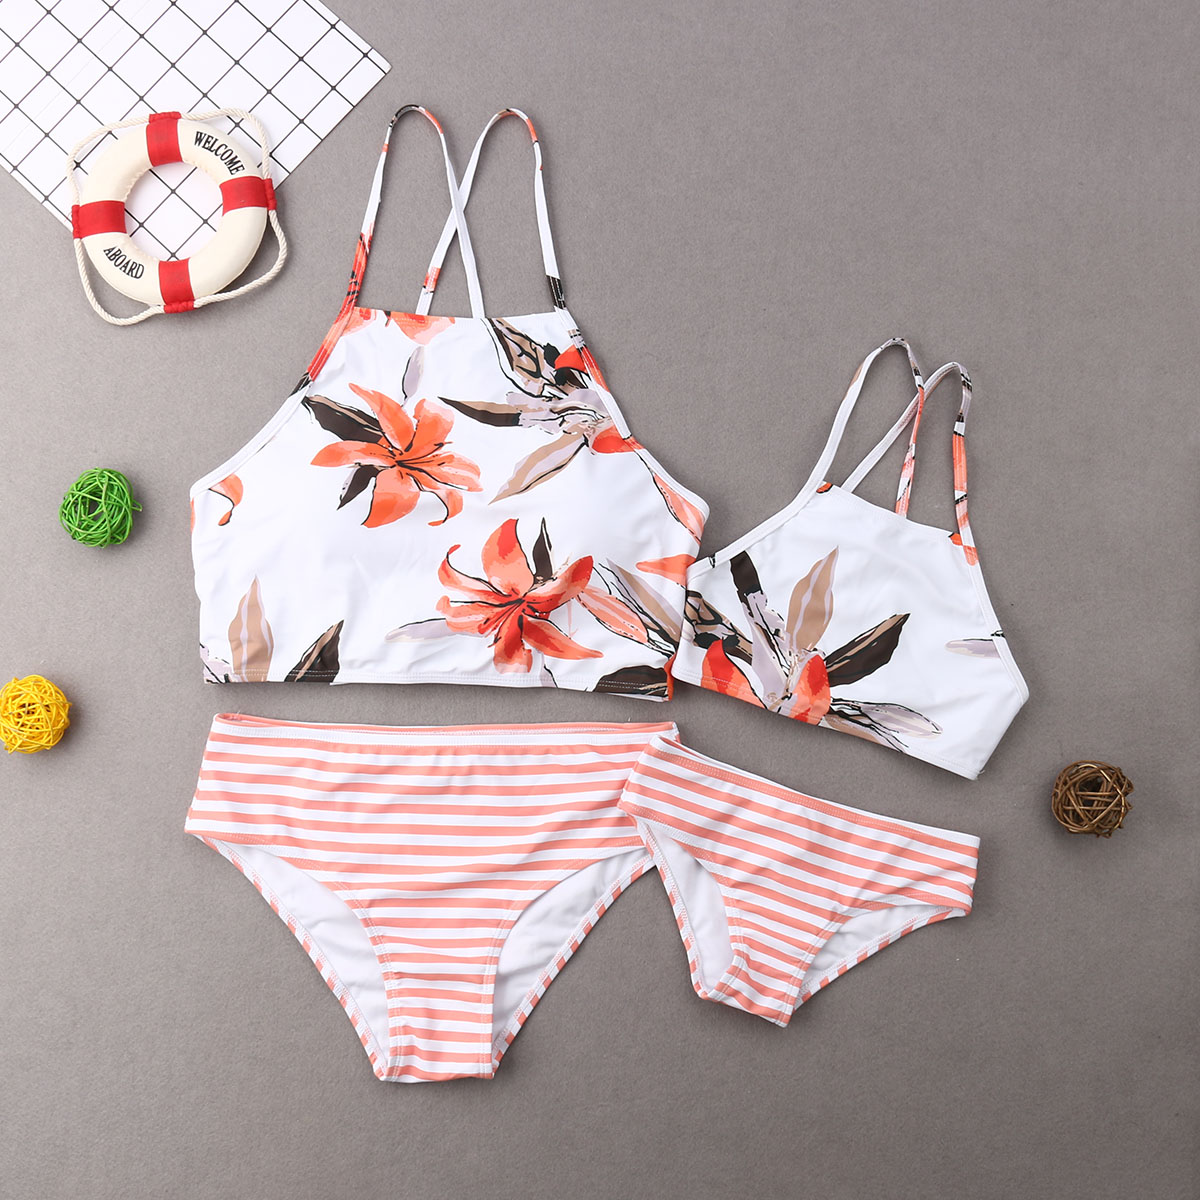 Leaf Mother And Daughter Swimwear Striped High Waist Bikini Mommy And Me Swimsuits Family Matching Clothes Beach Outfits Look